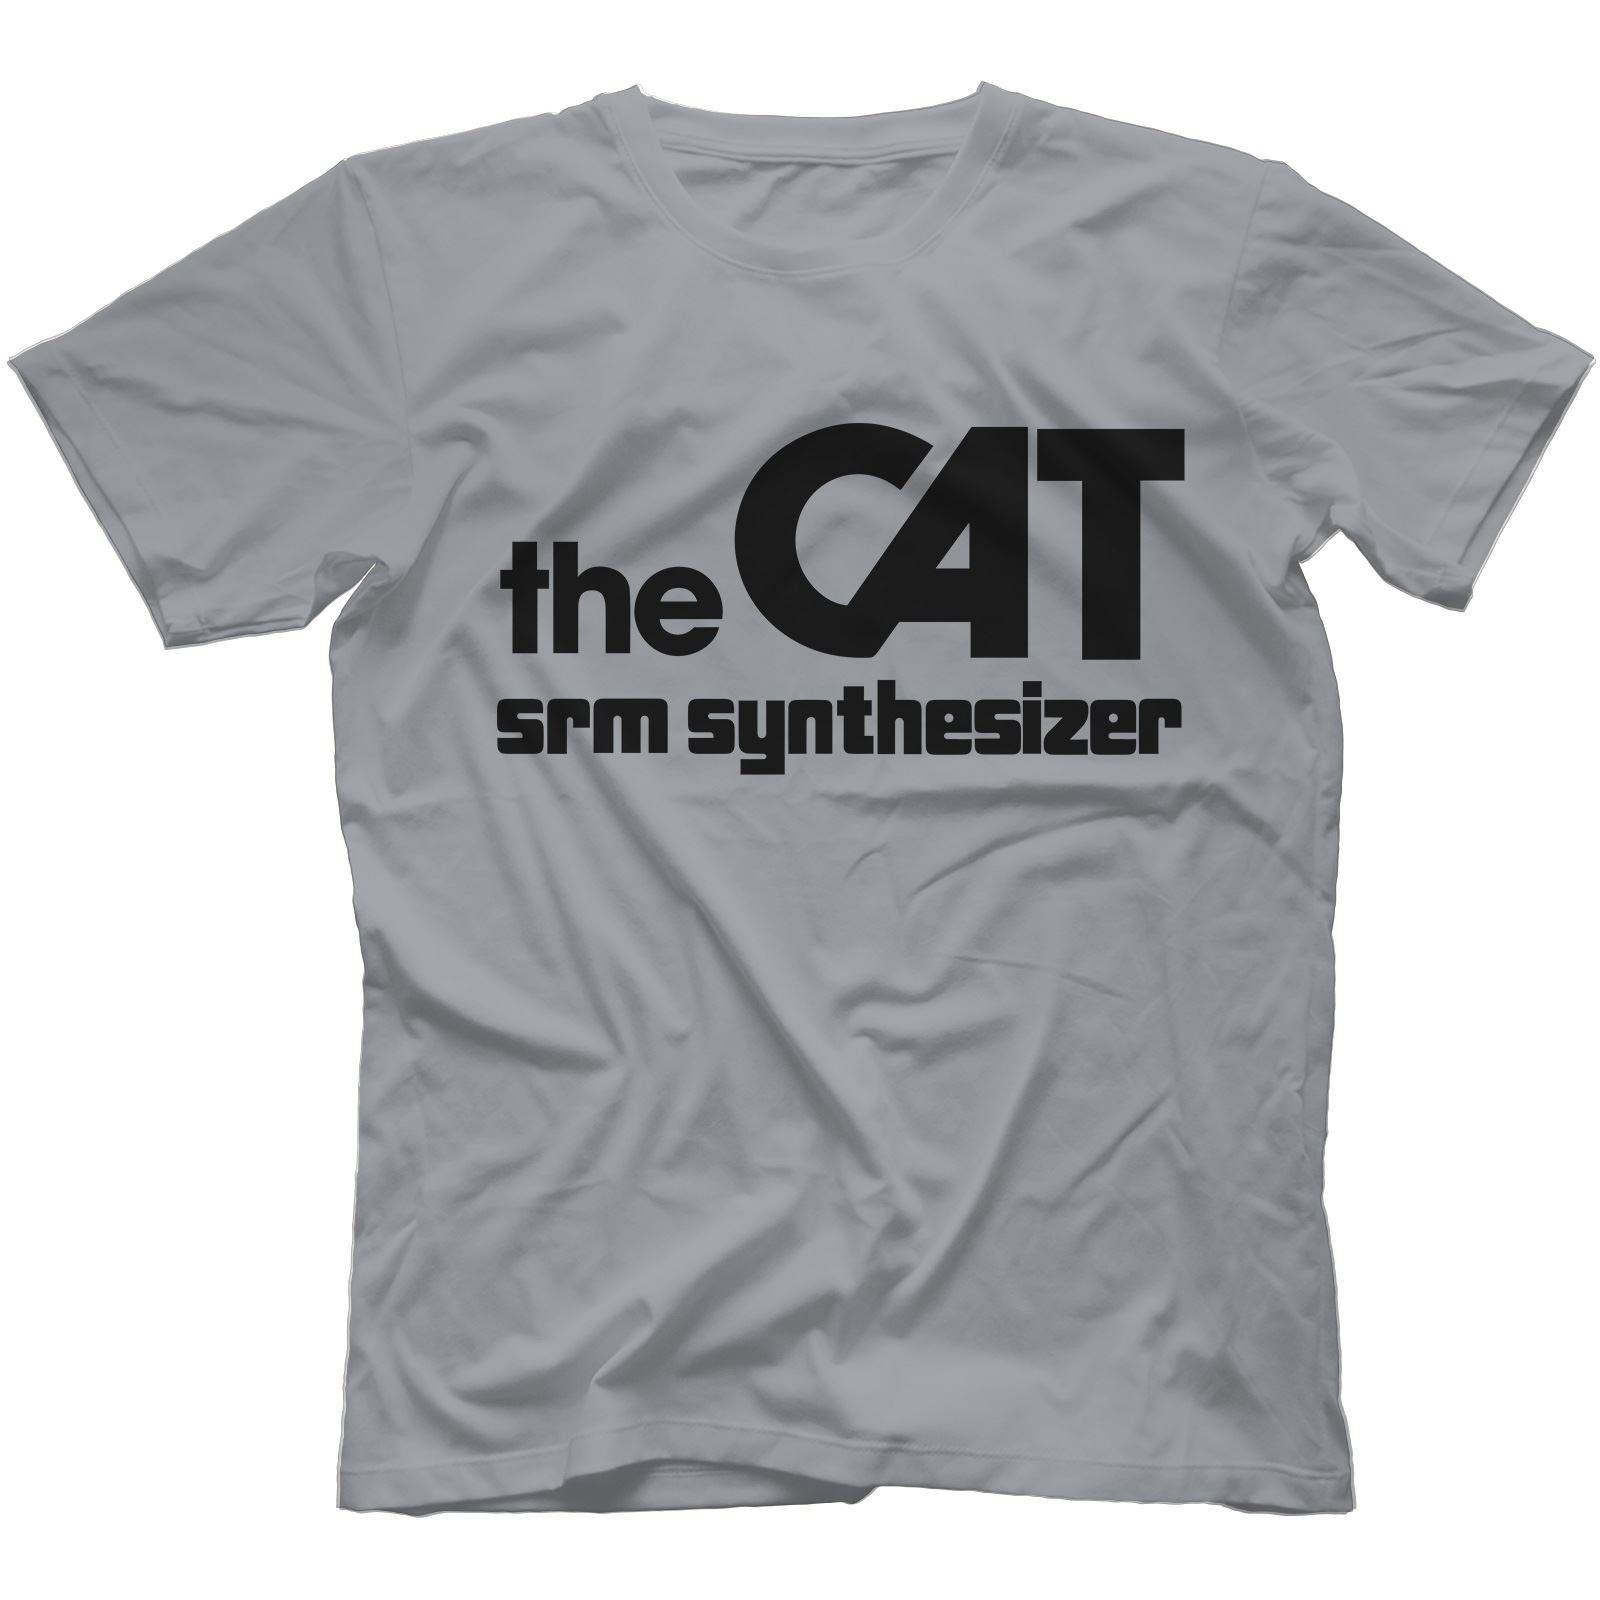 The-Cat-SRM-Synthesiser-T-Shirt-100-Cotton-Retro-Analog-Arp-Odyssey Indexbild 27